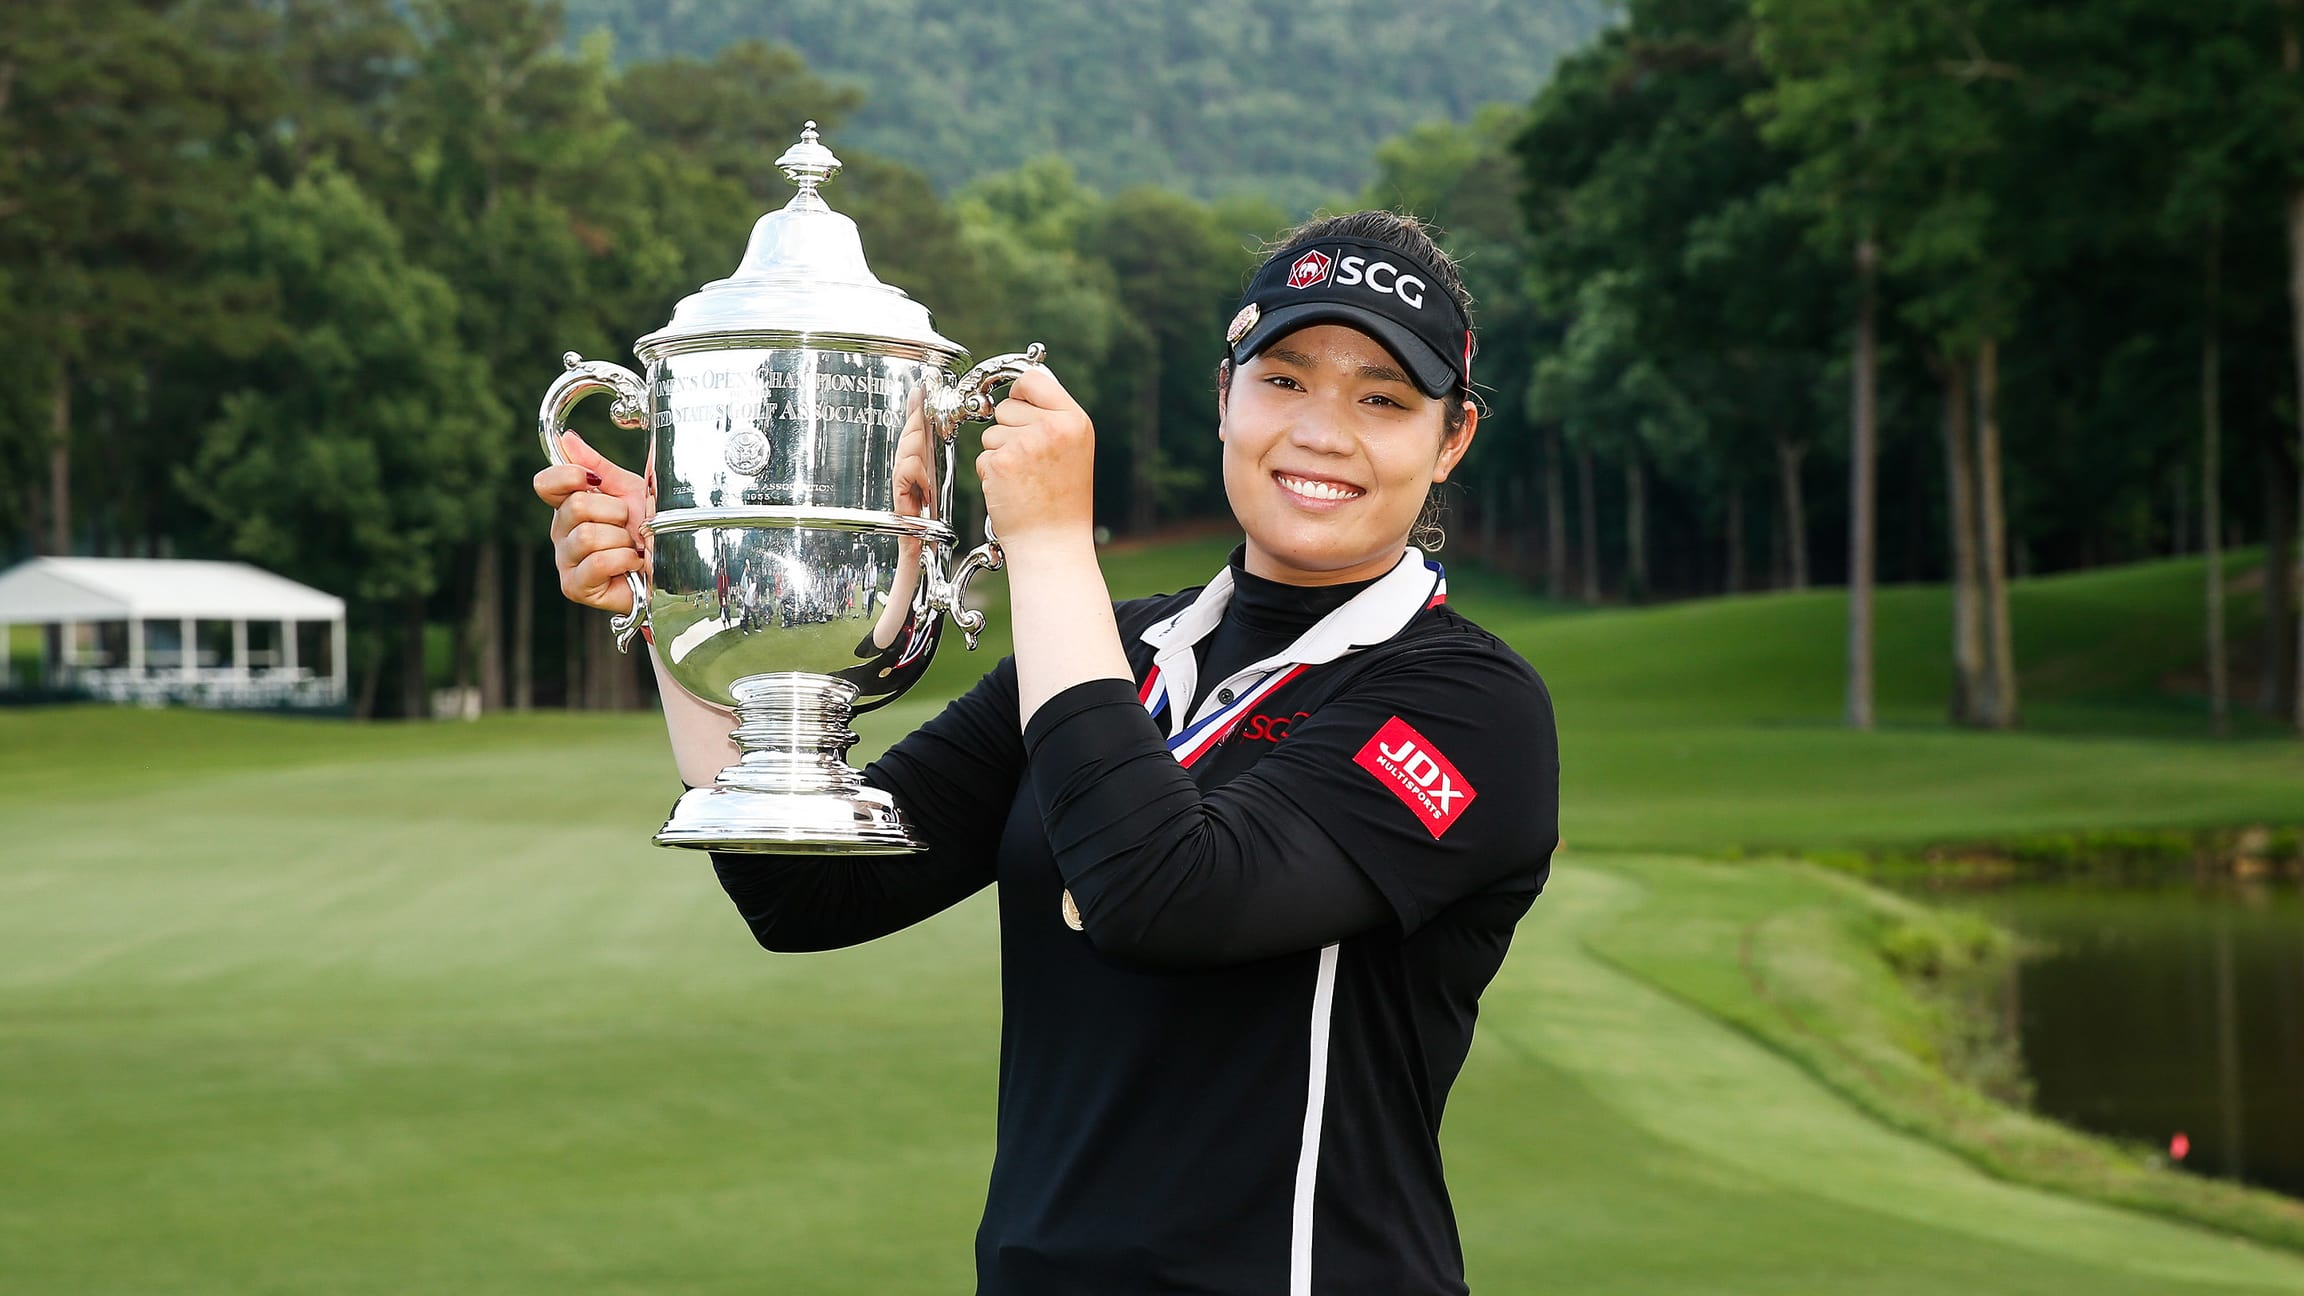 Us open and low amateur awards